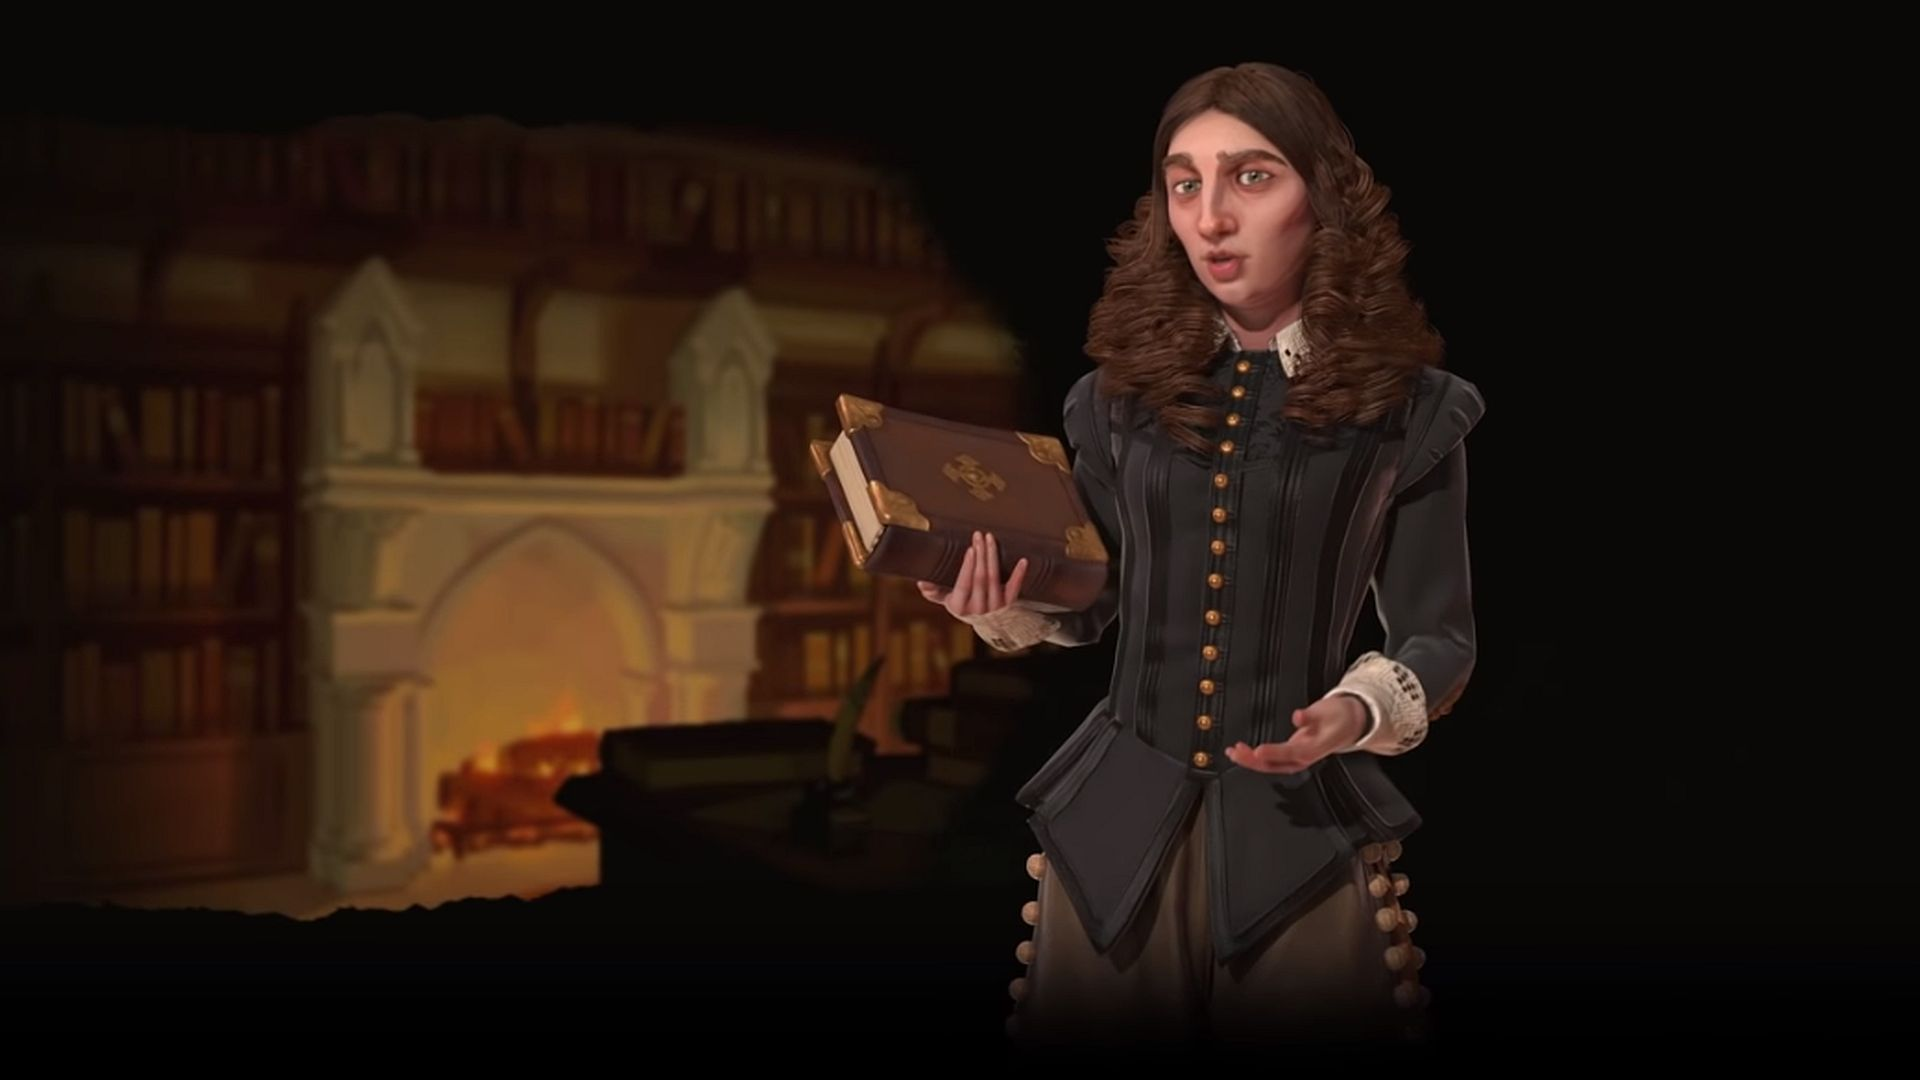 Civilization 6 Sweden guide: how to win as a diplomat or